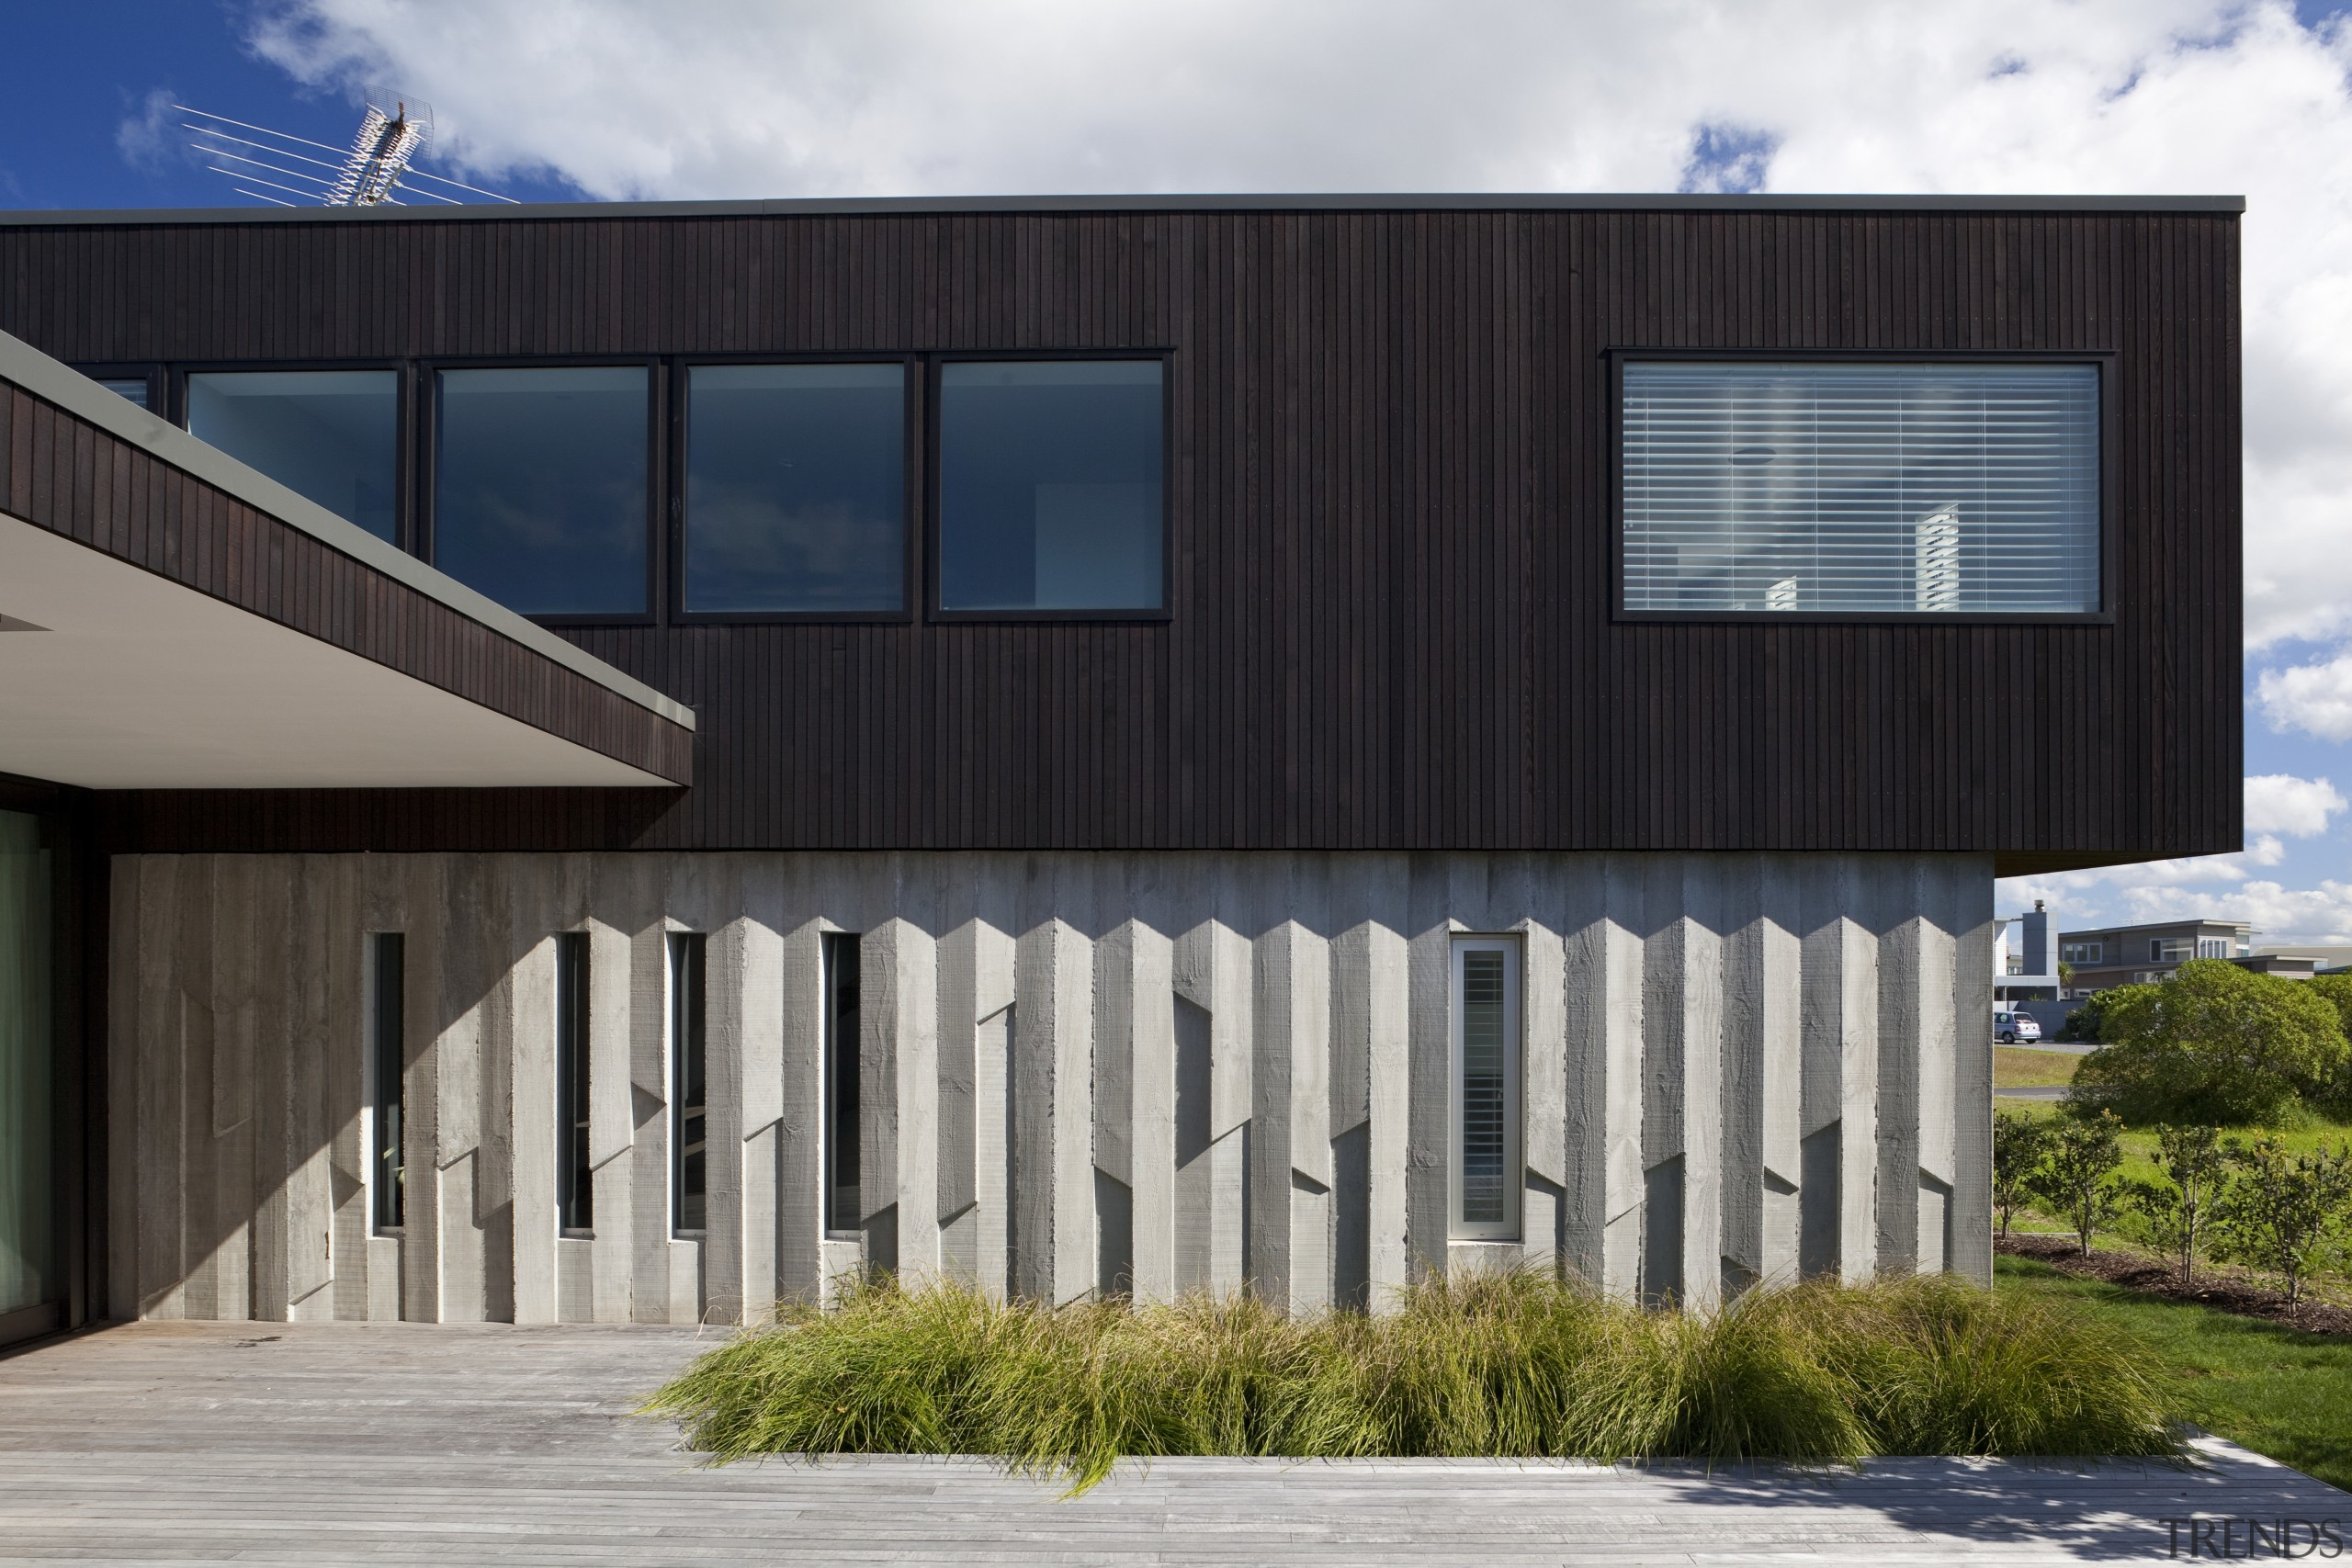 Ponting Fitzgerald-designed beach house - Ponting Fitzgerald-designed beach architecture, building, commercial building, corporate headquarters, elevation, facade, home, house, real estate, residential area, siding, structure, black, gray